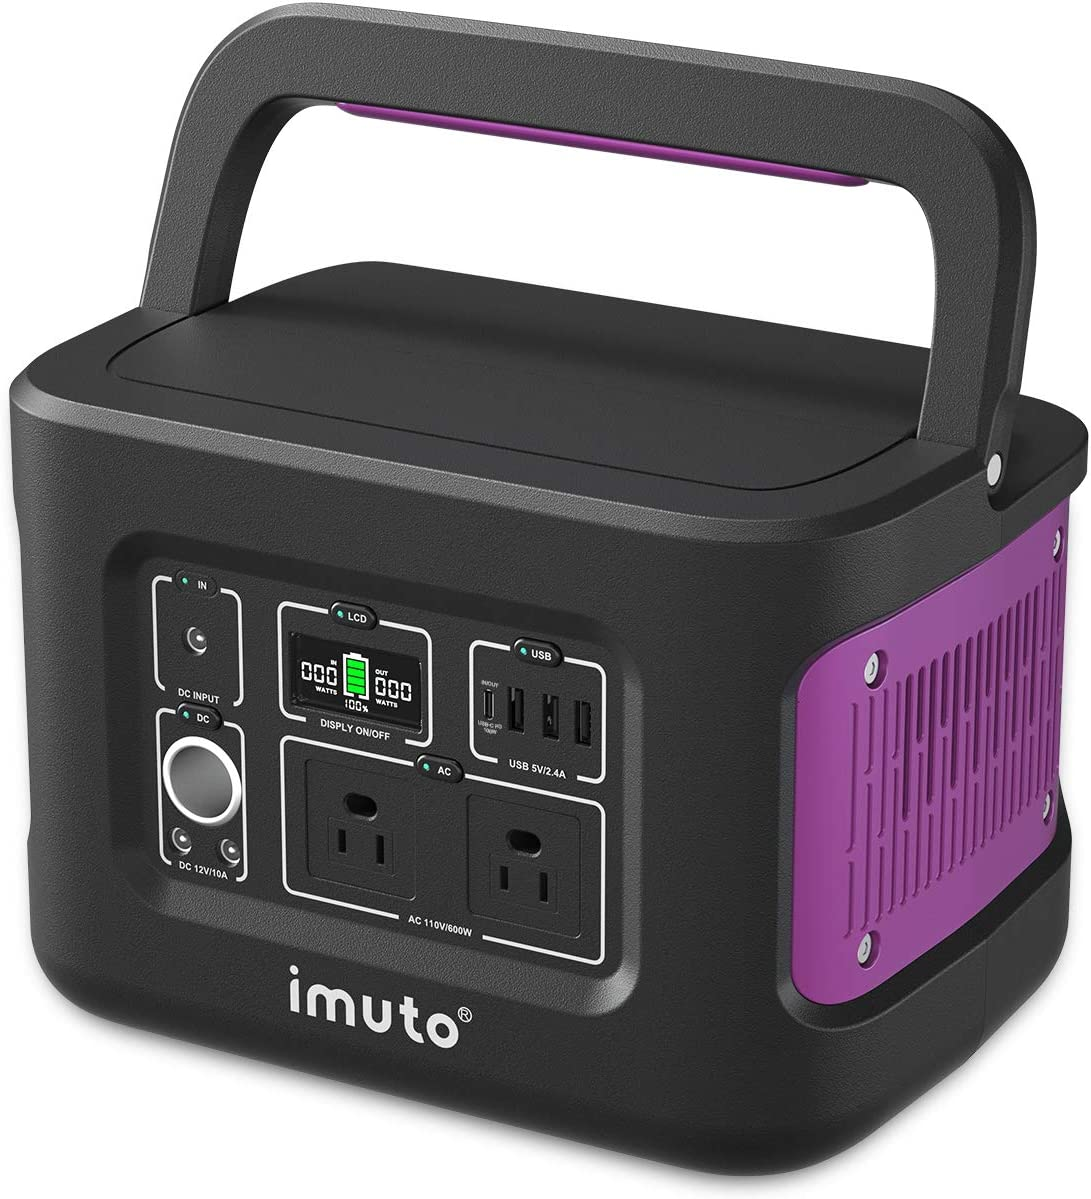 imuto Portable Power Station 600W 2 Department Topics on TV store Solar 622Wh with Generator